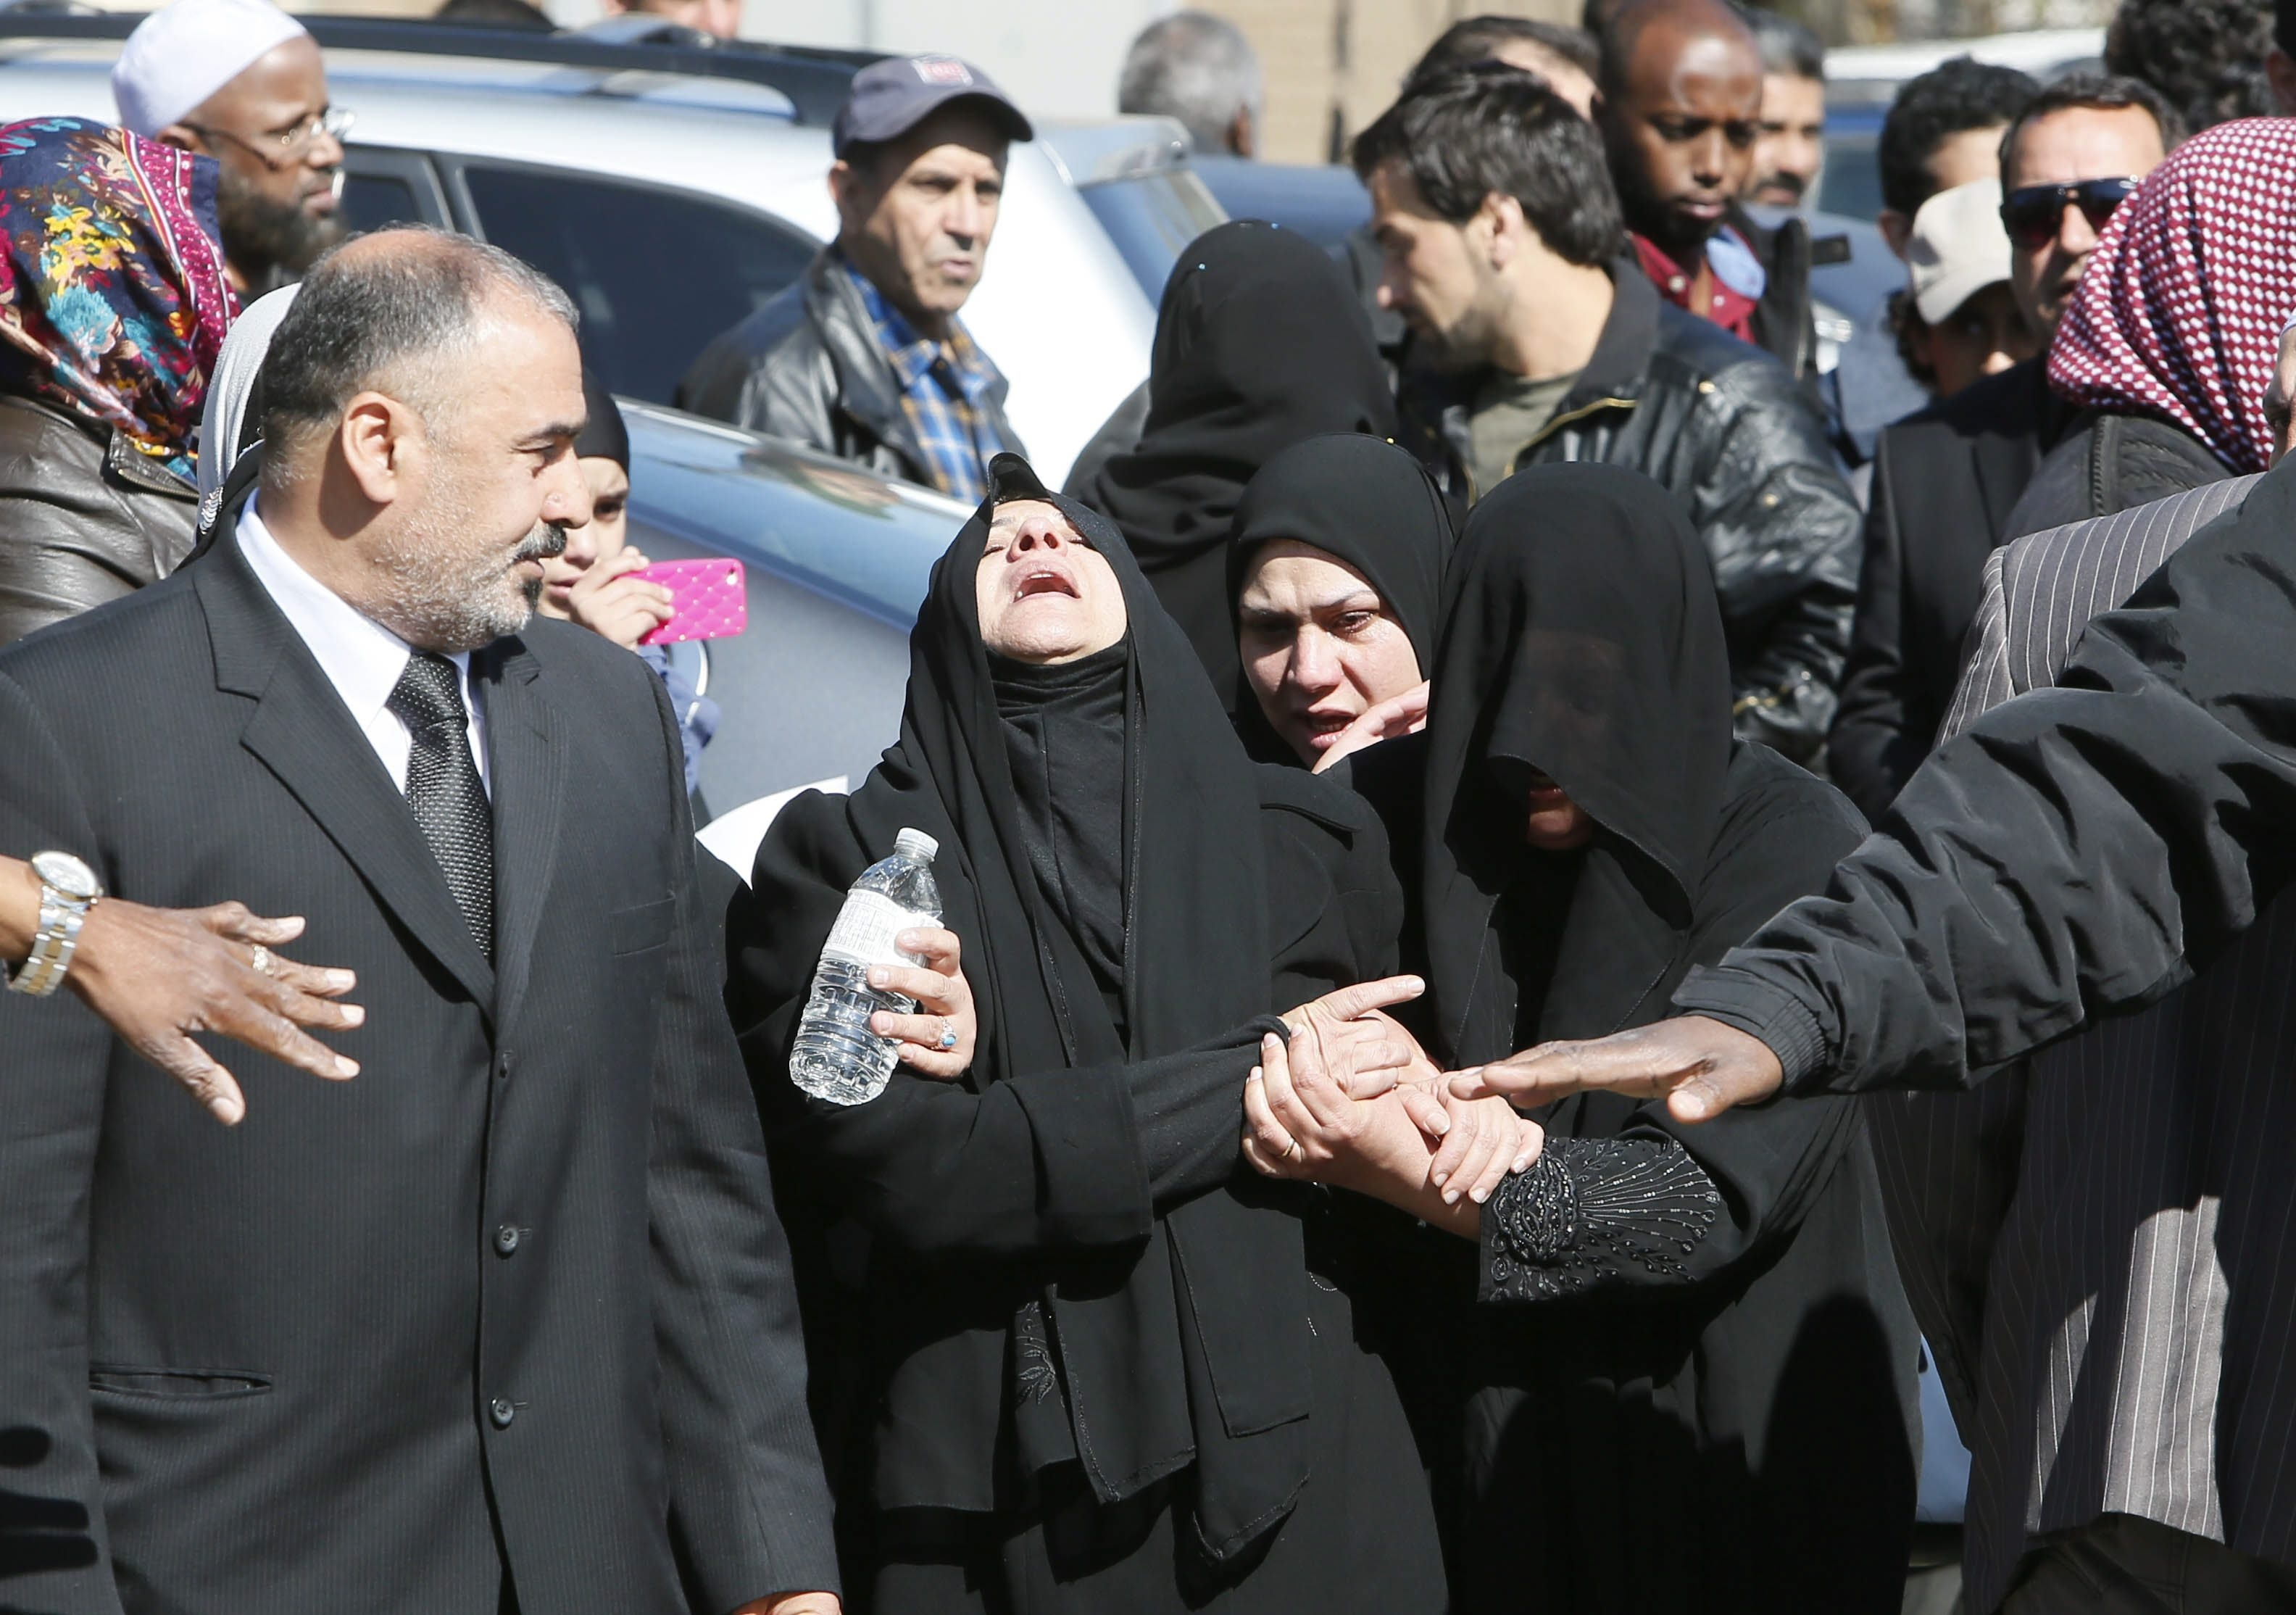 Mourners leave the Masjid Al-Eman Mosque on Connecticut Street after the funeral of 13-year-old Ameer Al Shammari, Tuesday, May 6, 2014.   (Derek Gee/Buffalo News)